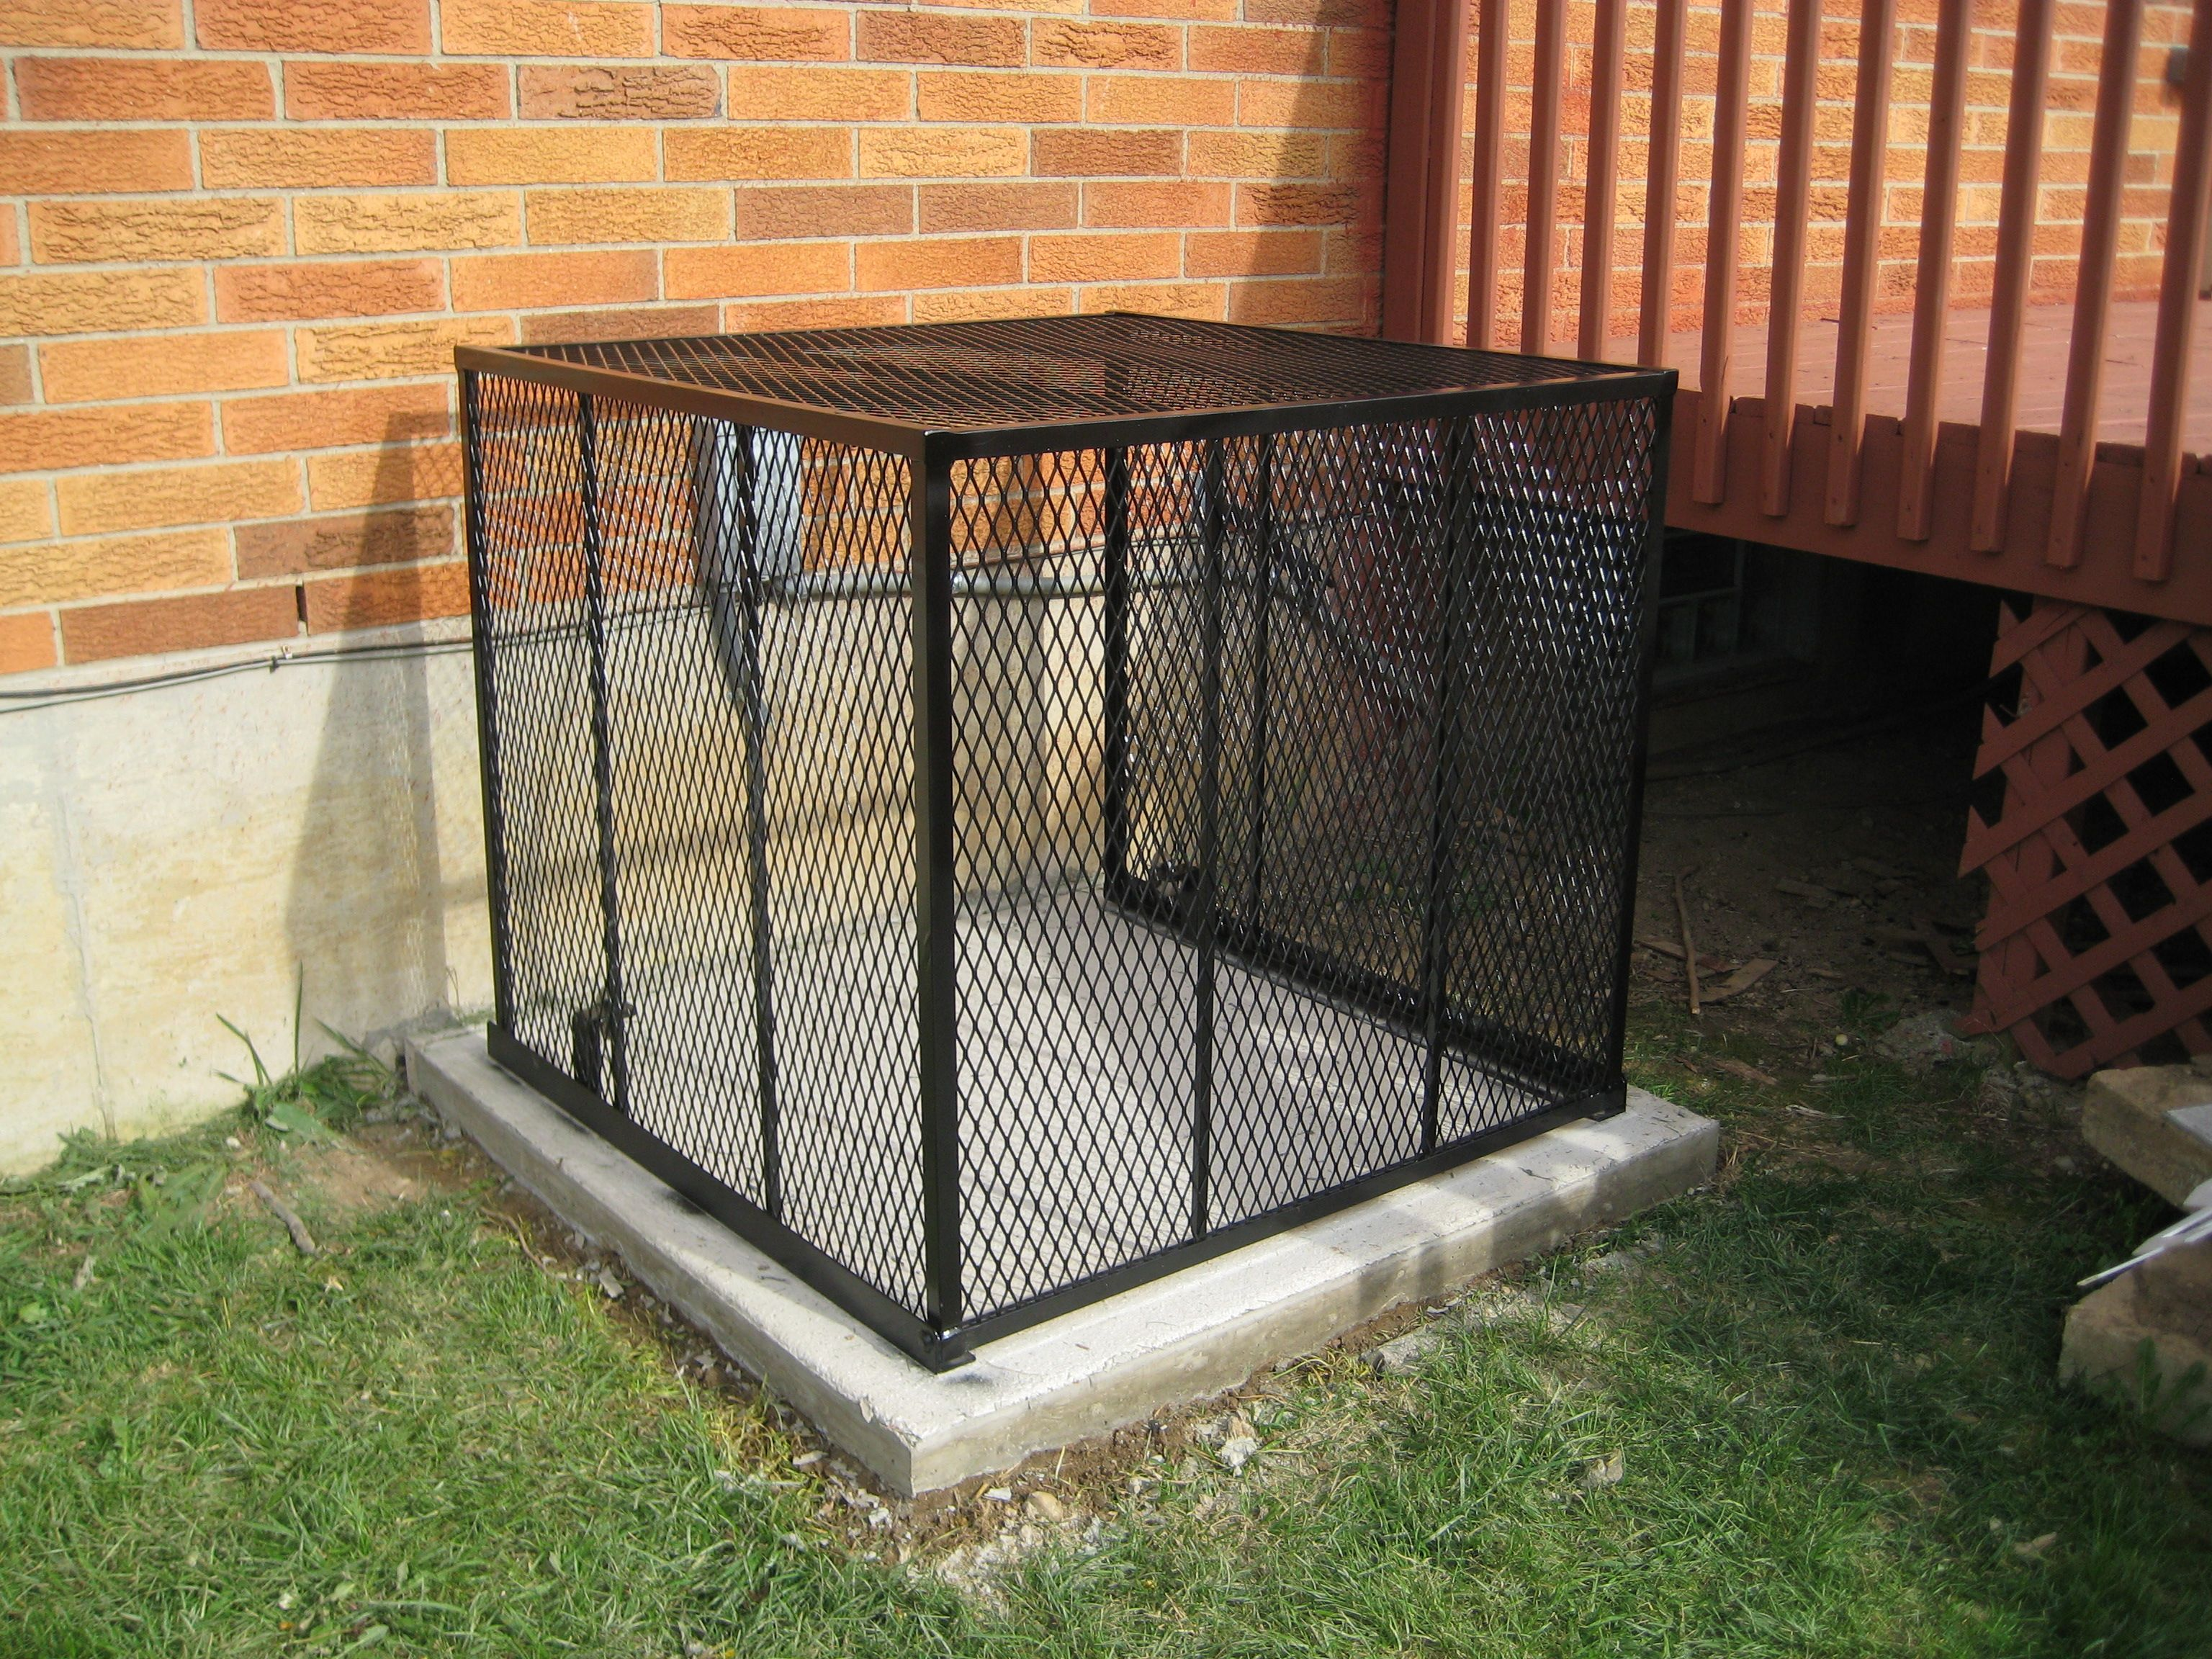 Ac Cage With A New Durable Cages Concrete Pad Concrete Pad Concrete Durable